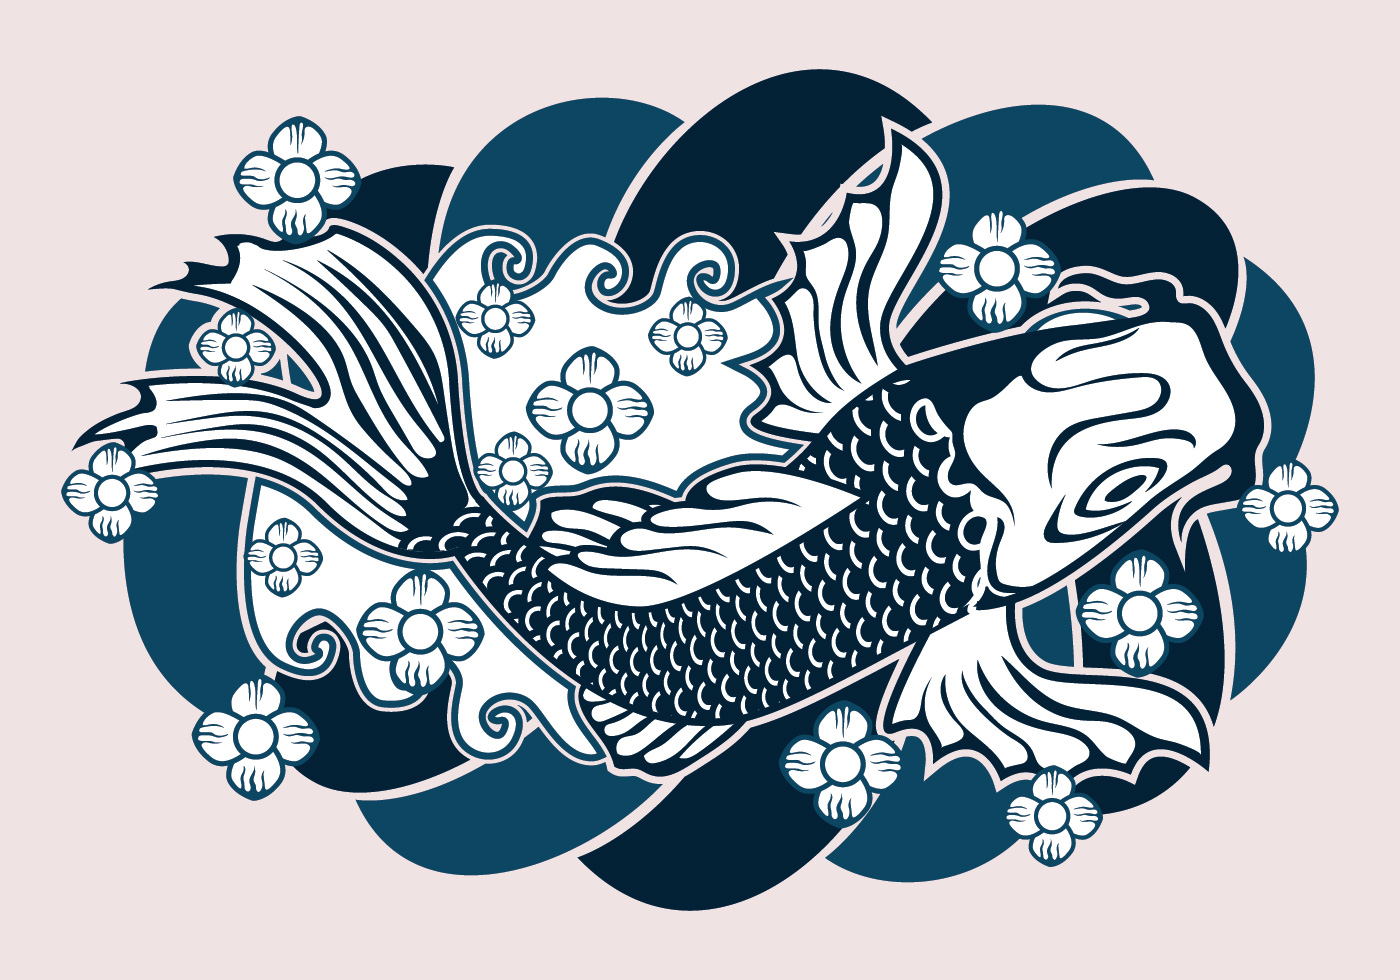 Httpstattoo Idea Pictures Comsearchjapanese Massage: Download Free Vectors, Clipart